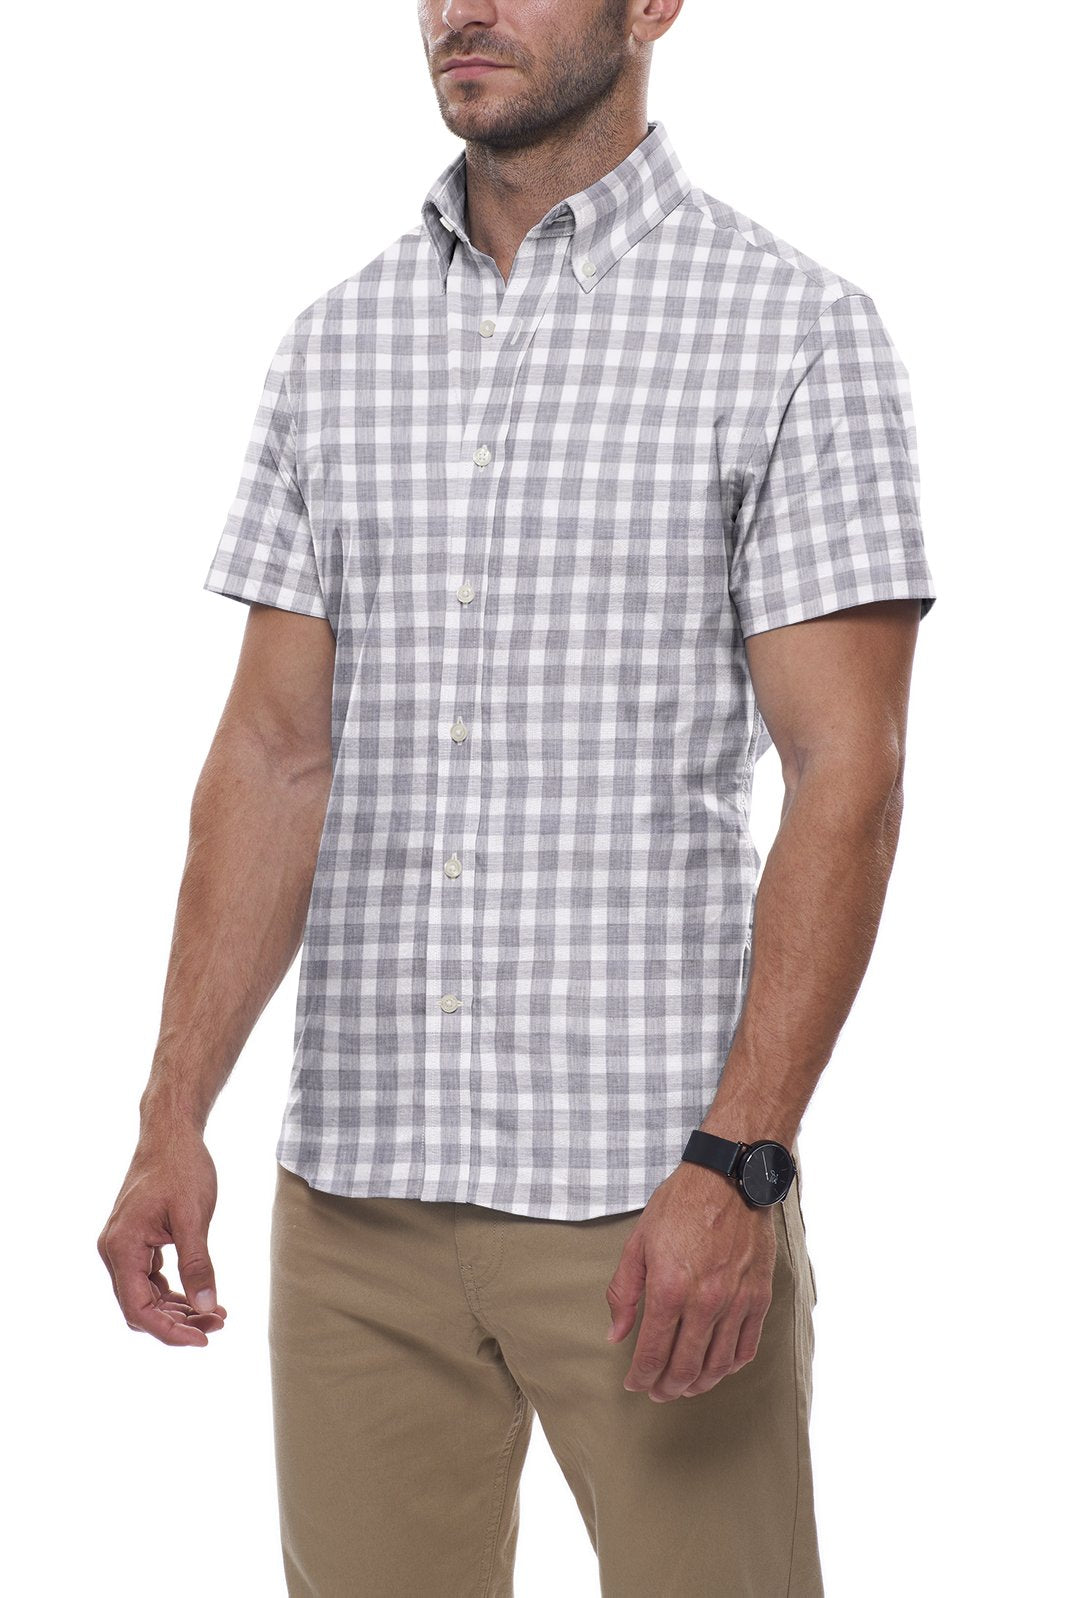 Heather Stone Buffalo Check: Semi-Spread Collar, Short Sleeve